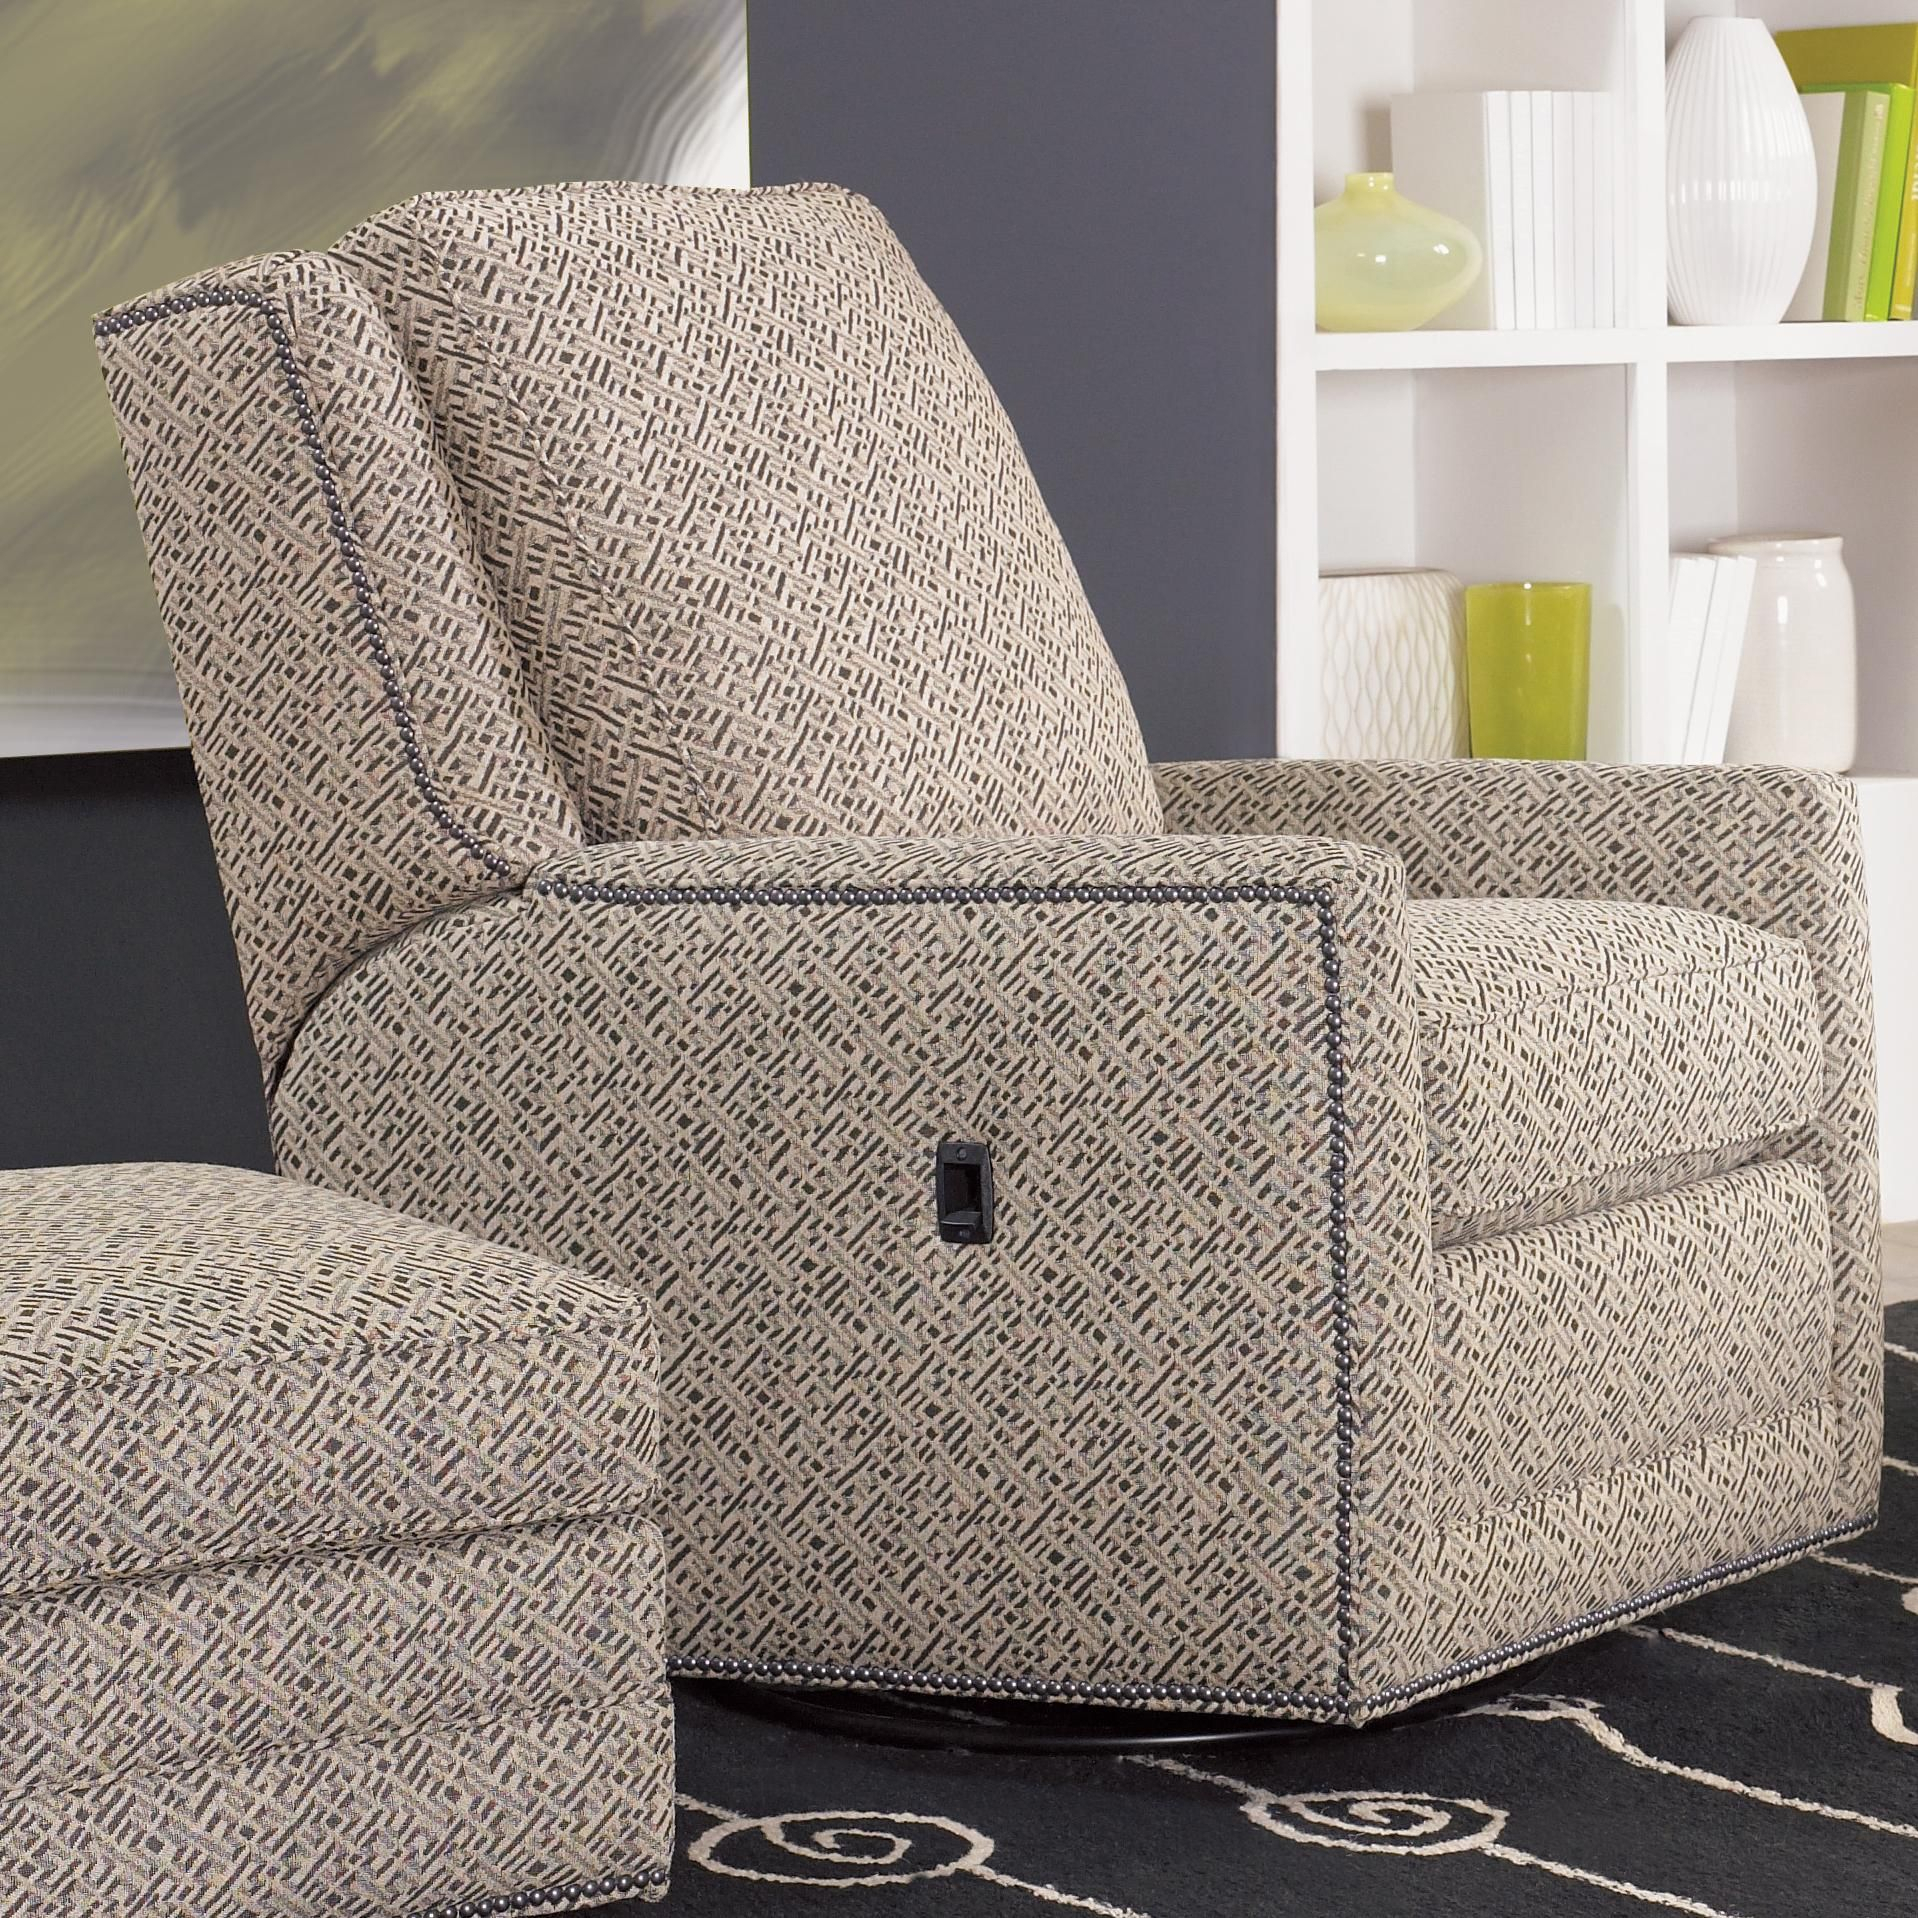 Recliners Swivel Tilt Back Chairsmith Brothers | Recliner In Bailey Linen Flare Arm Wing Skirted Swivel Gliders (Image 23 of 25)